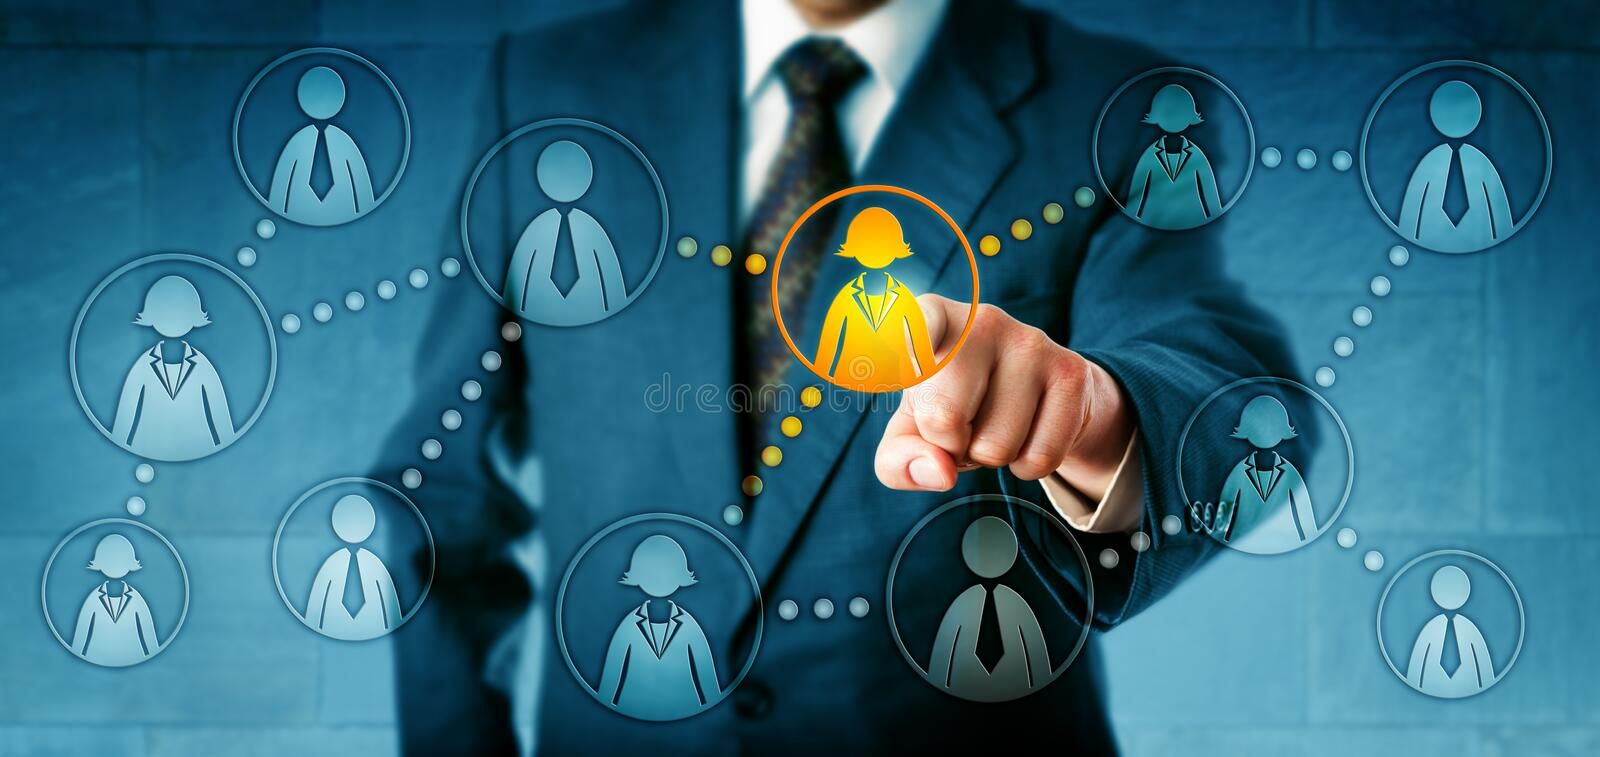 HR Manager Headhunting In Social Network. Human resources manager selecting one female white collar worker icon among many employee symbols. Concept for stock photo